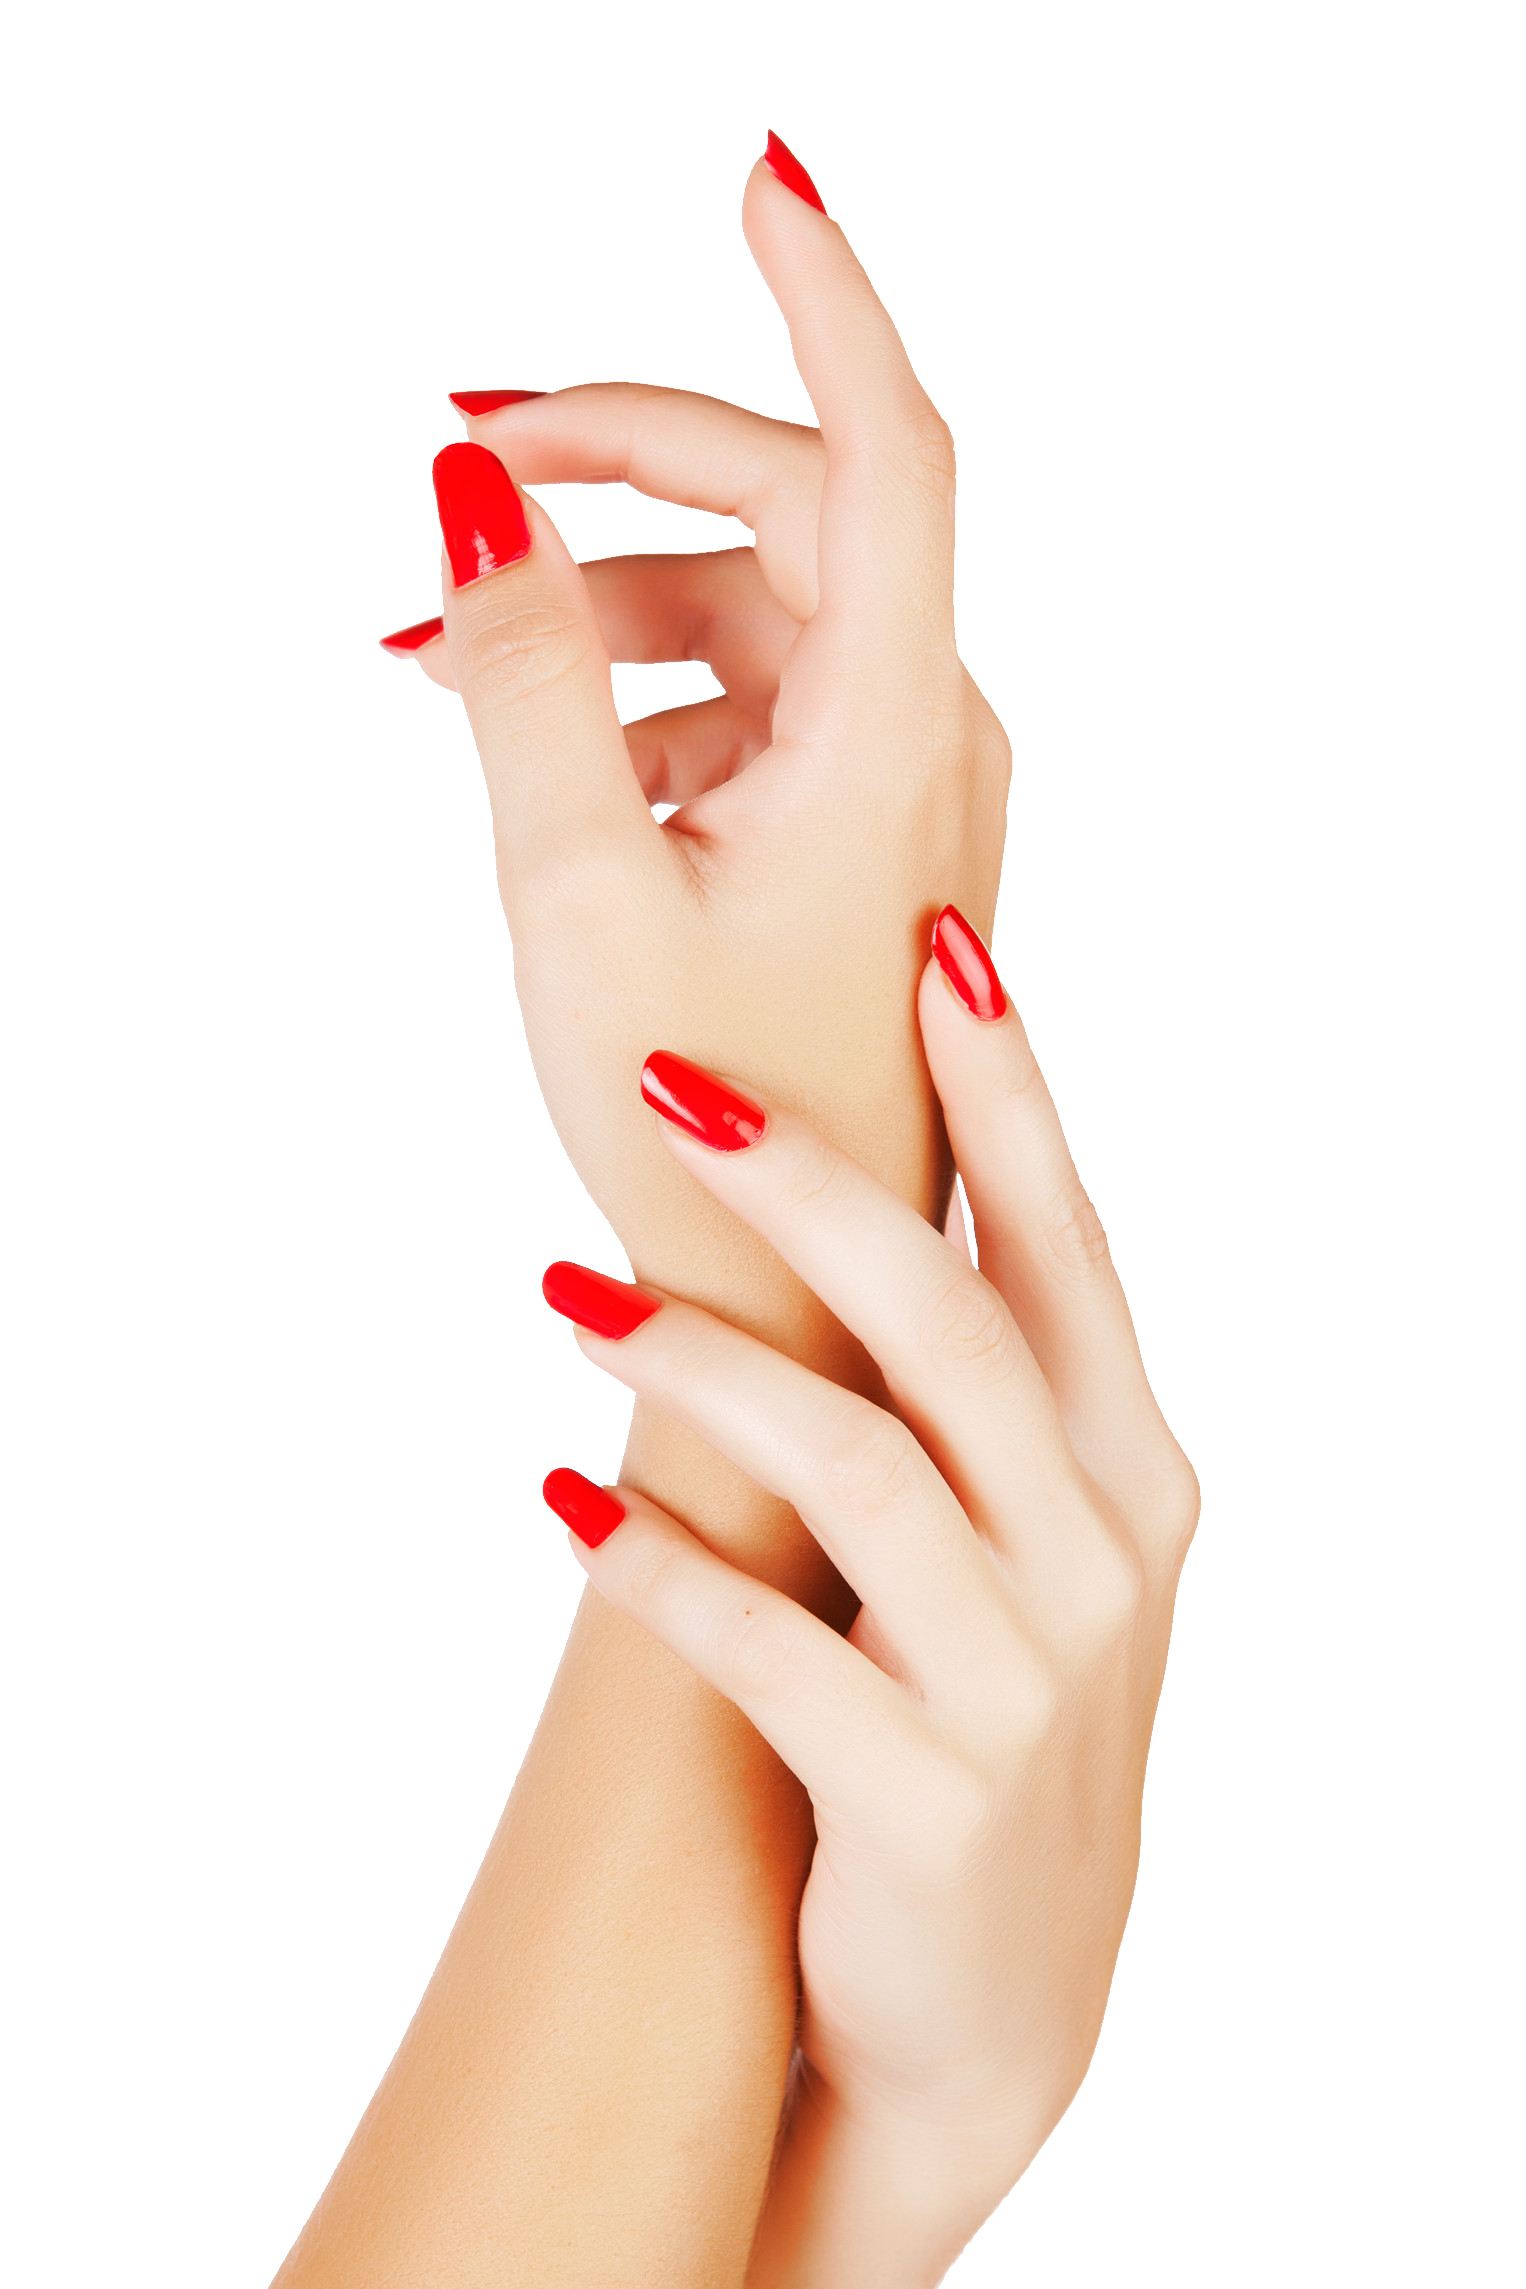 Nail clipart red nails. Color png image purepng